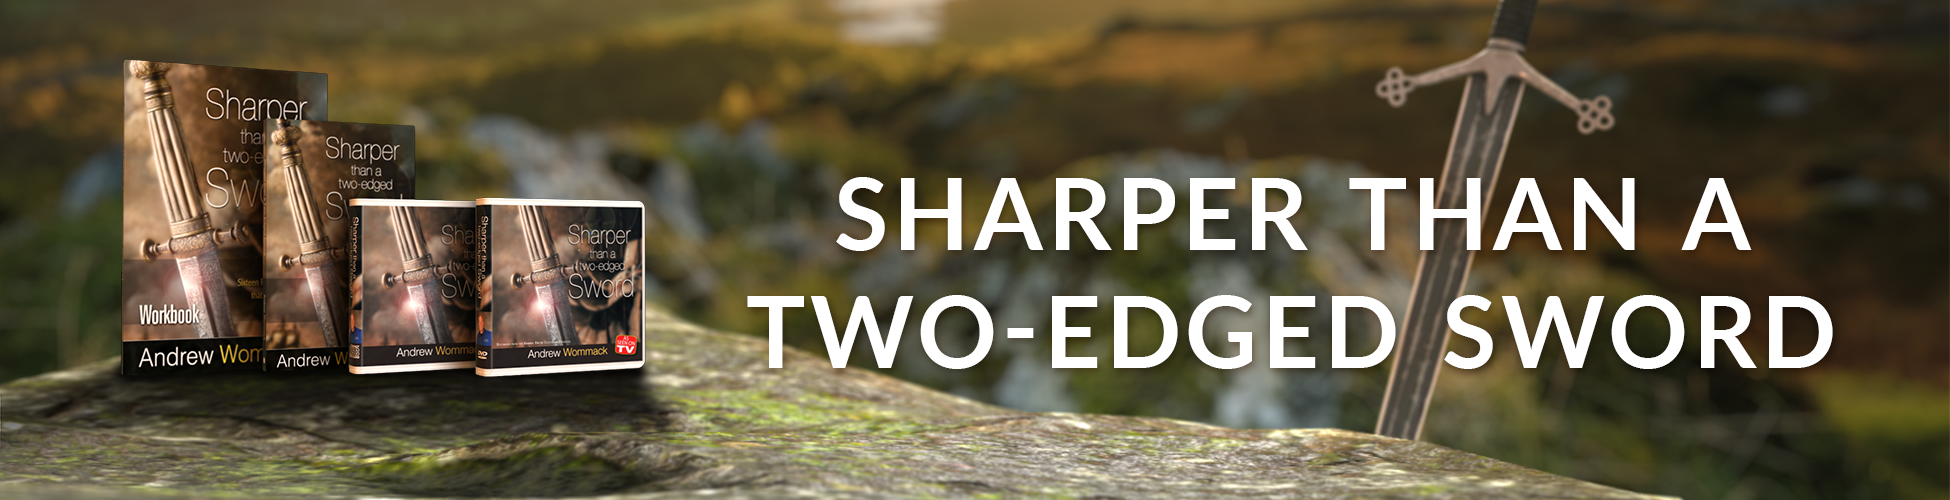 Sharper-Than-a-Two-Edged-Sword-1950x500-website-banner